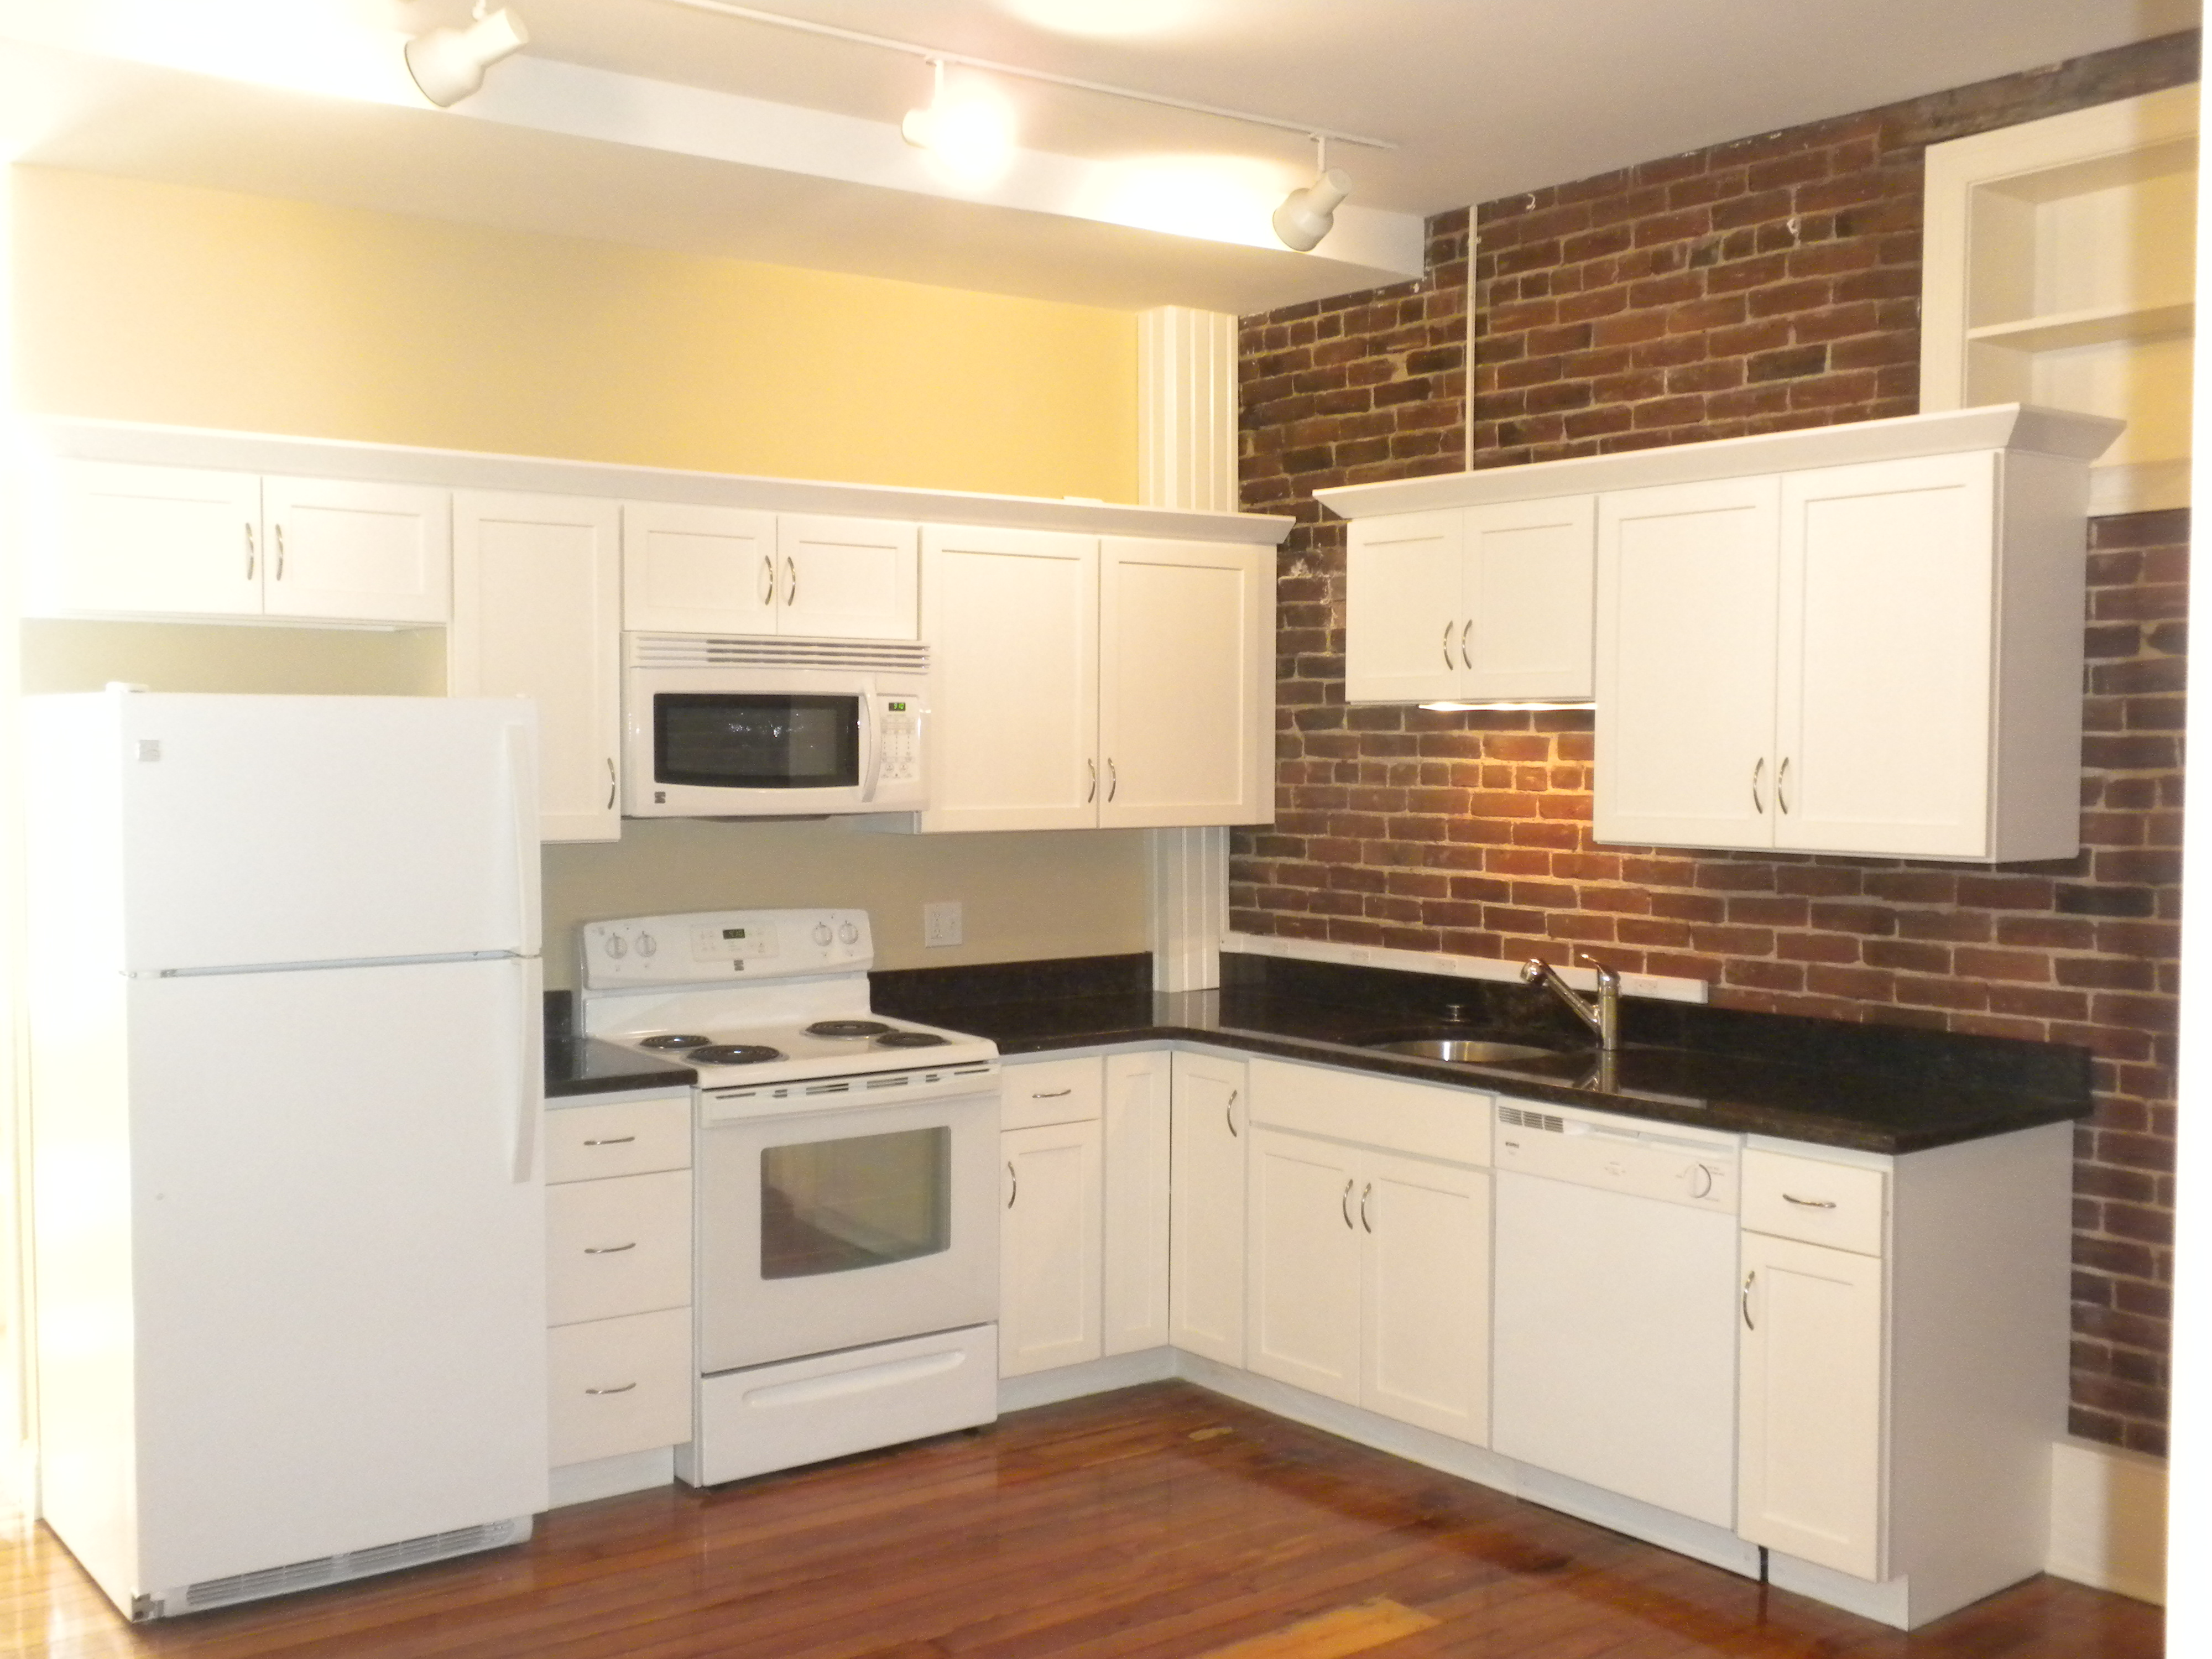 3 Bedroom Apartment Amherst Ma Umass